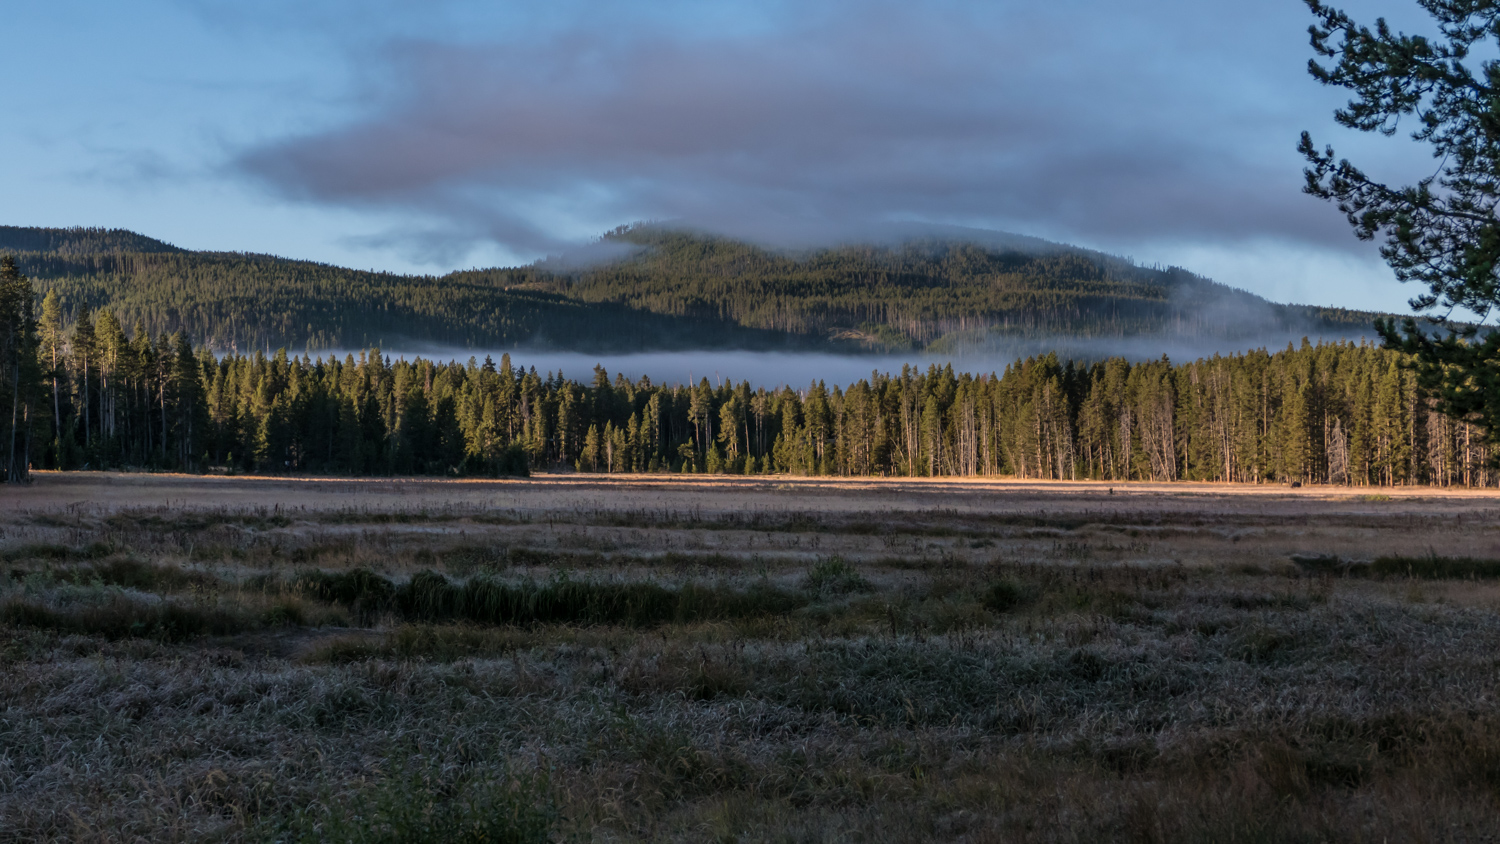 Daybreak at Norris campground on a frosty morning. Temperature was 24 def F this morning